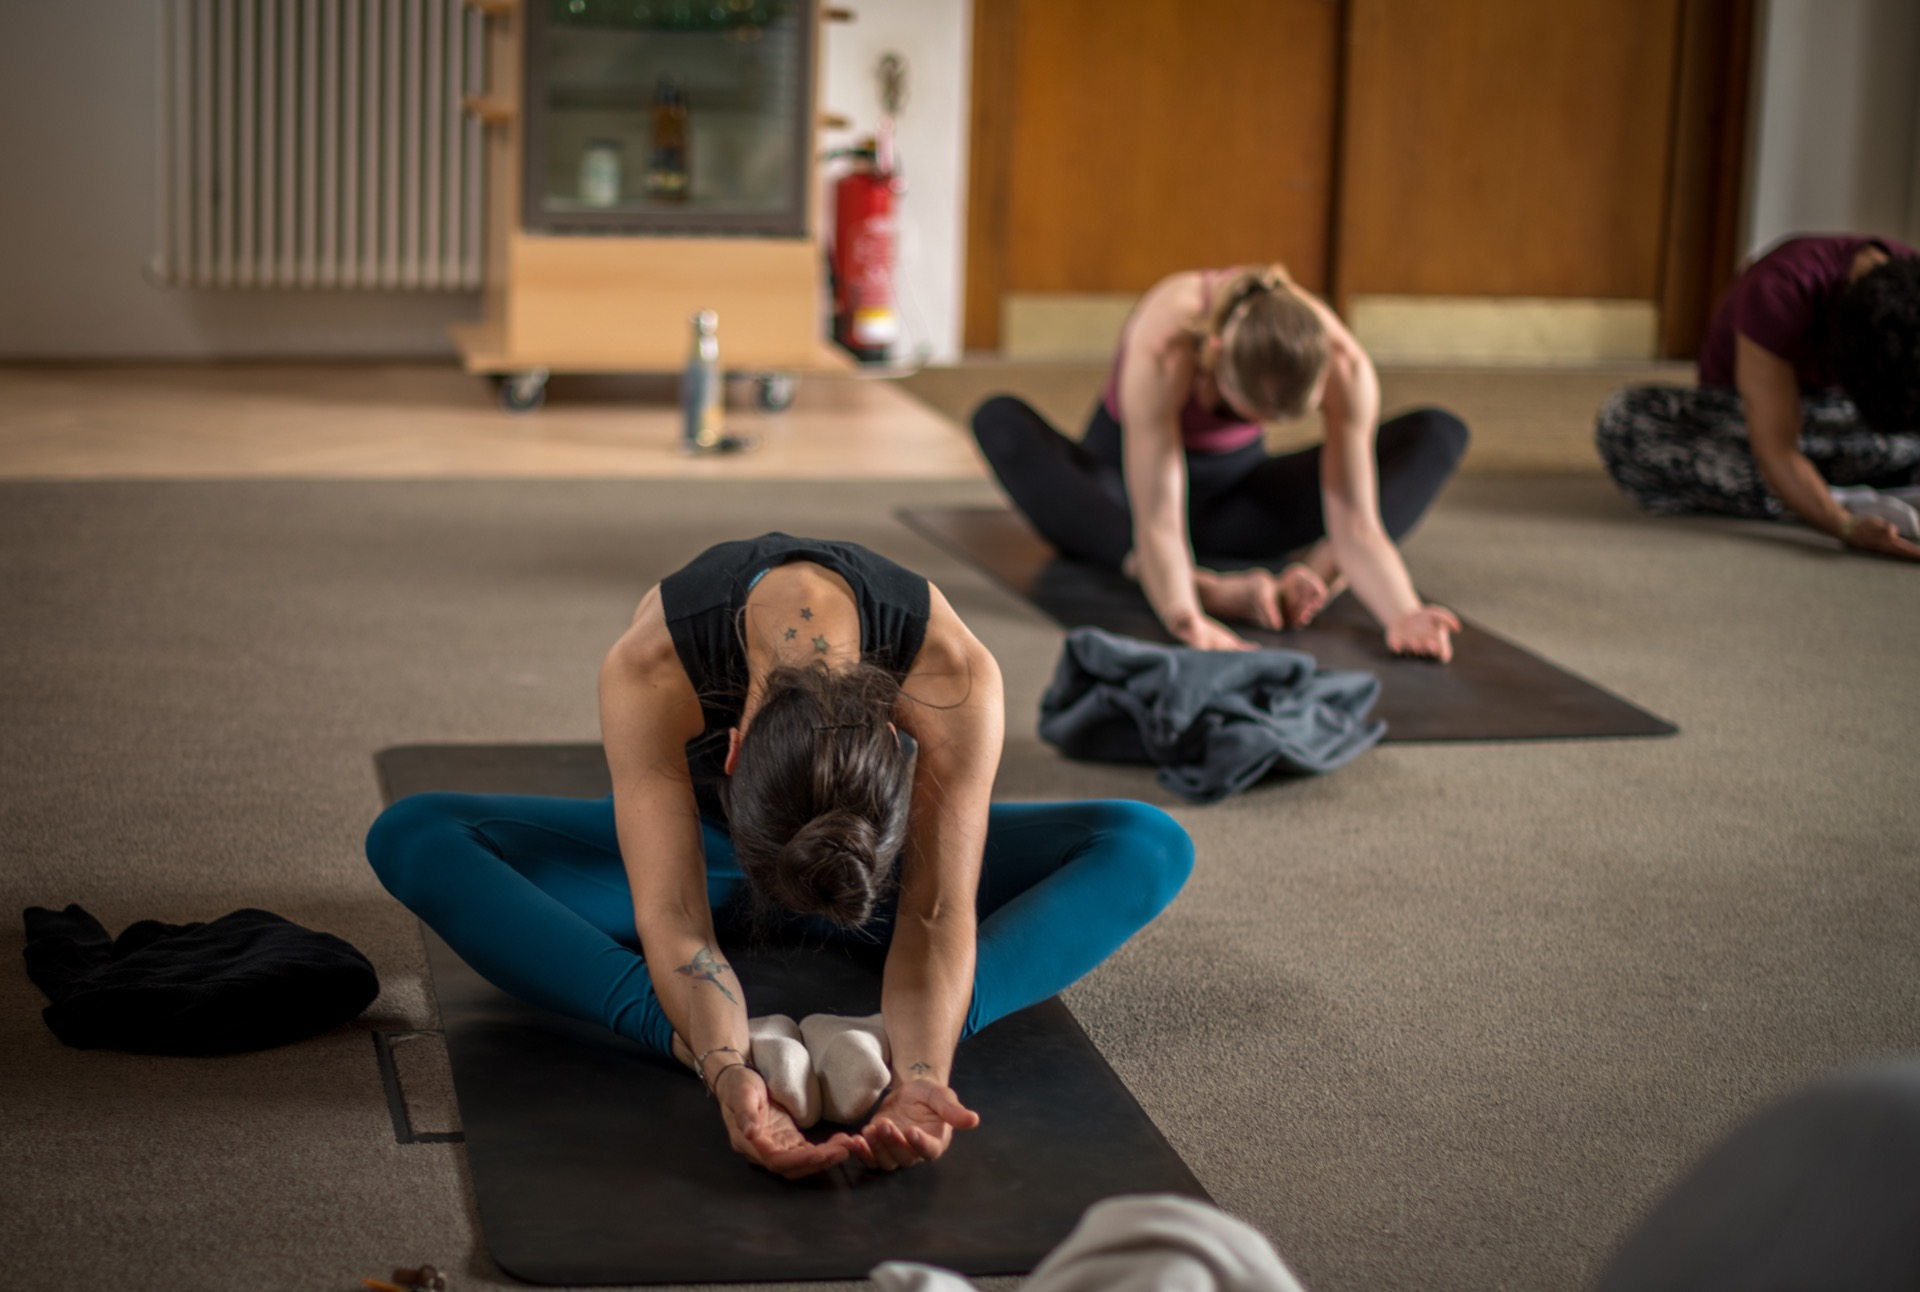 Hie-Kim-Friends-2019-Yoga-Retreat-Alina-Matis-Photography-122 - Hie Kim Yoga - Yoga Retreat - Yoga Workshops und Reisen